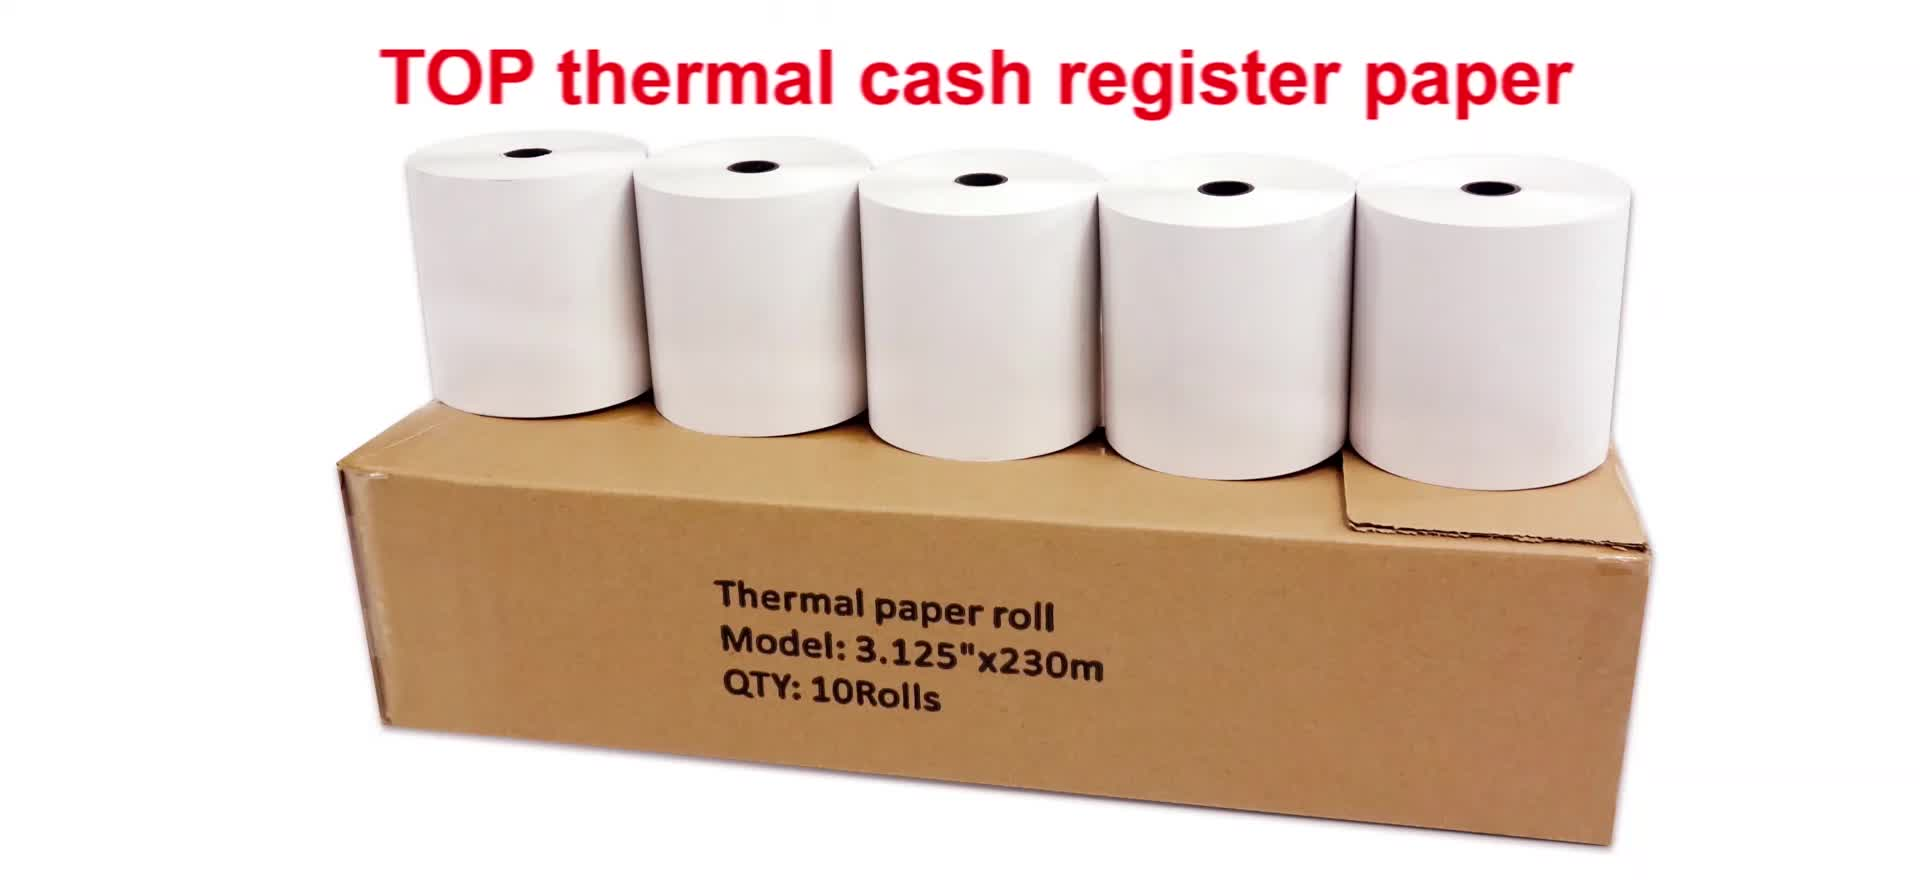 "Jetland Thermal Paper 80*50mm, no core, 55gsm,  Cash Register Receipt Paper Roll  3 1/8"" x 100', BPA free"